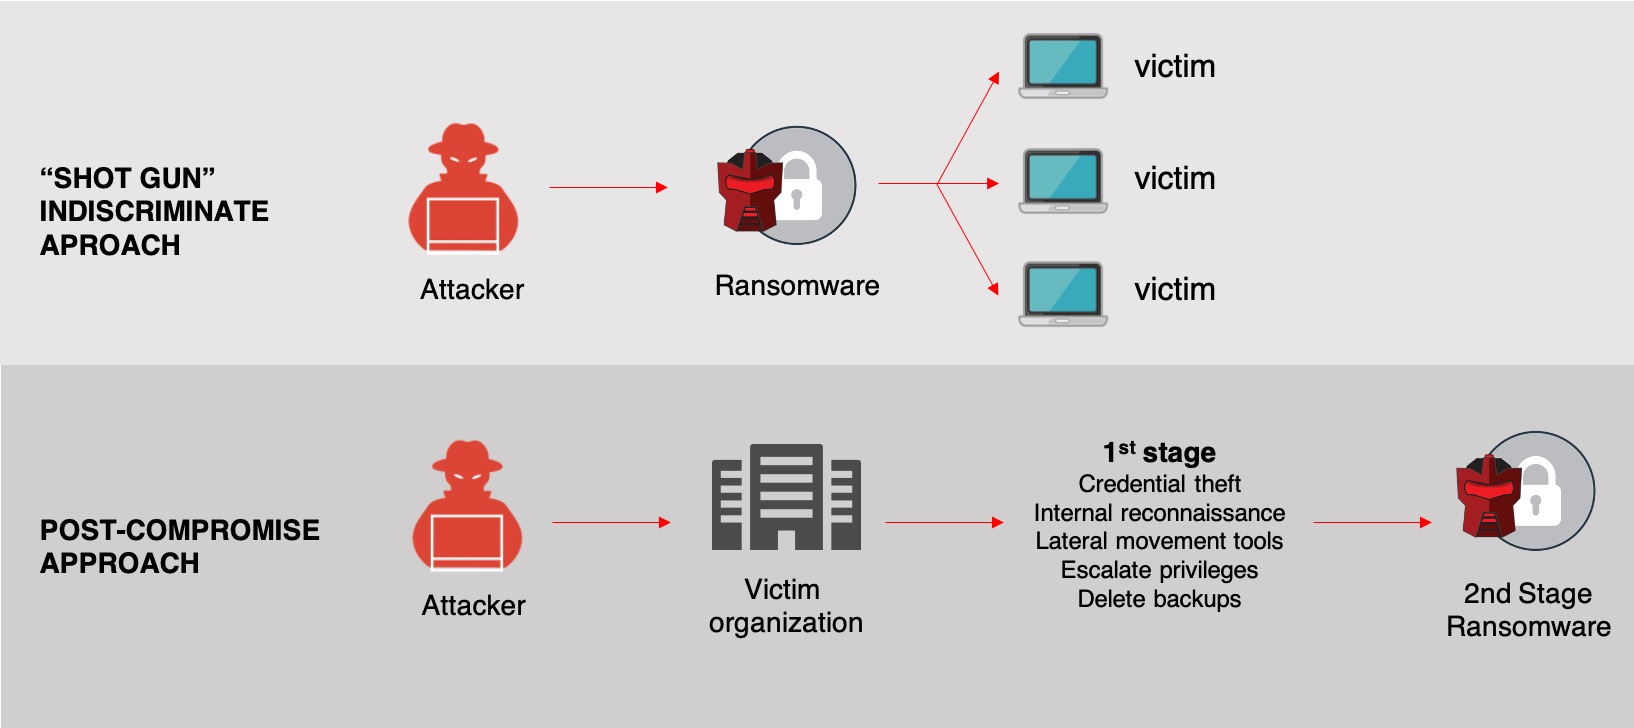 Comparison of indiscriminate vs. post-compromise ransomware approaches